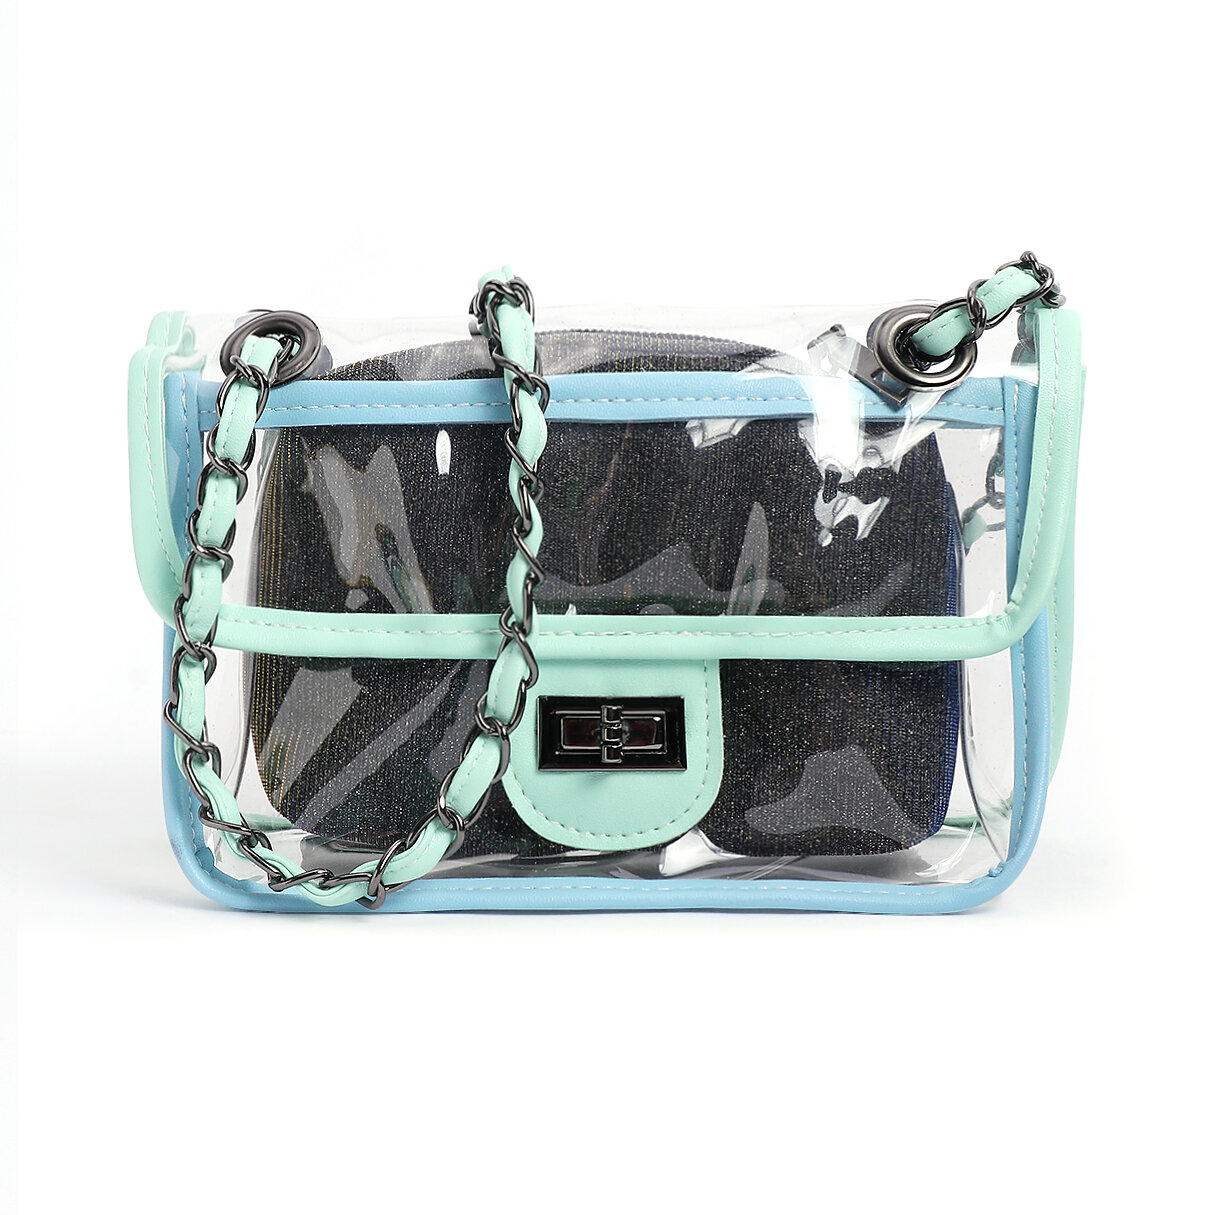 Green PVC Crossbody bags with Small PU Bags - 1